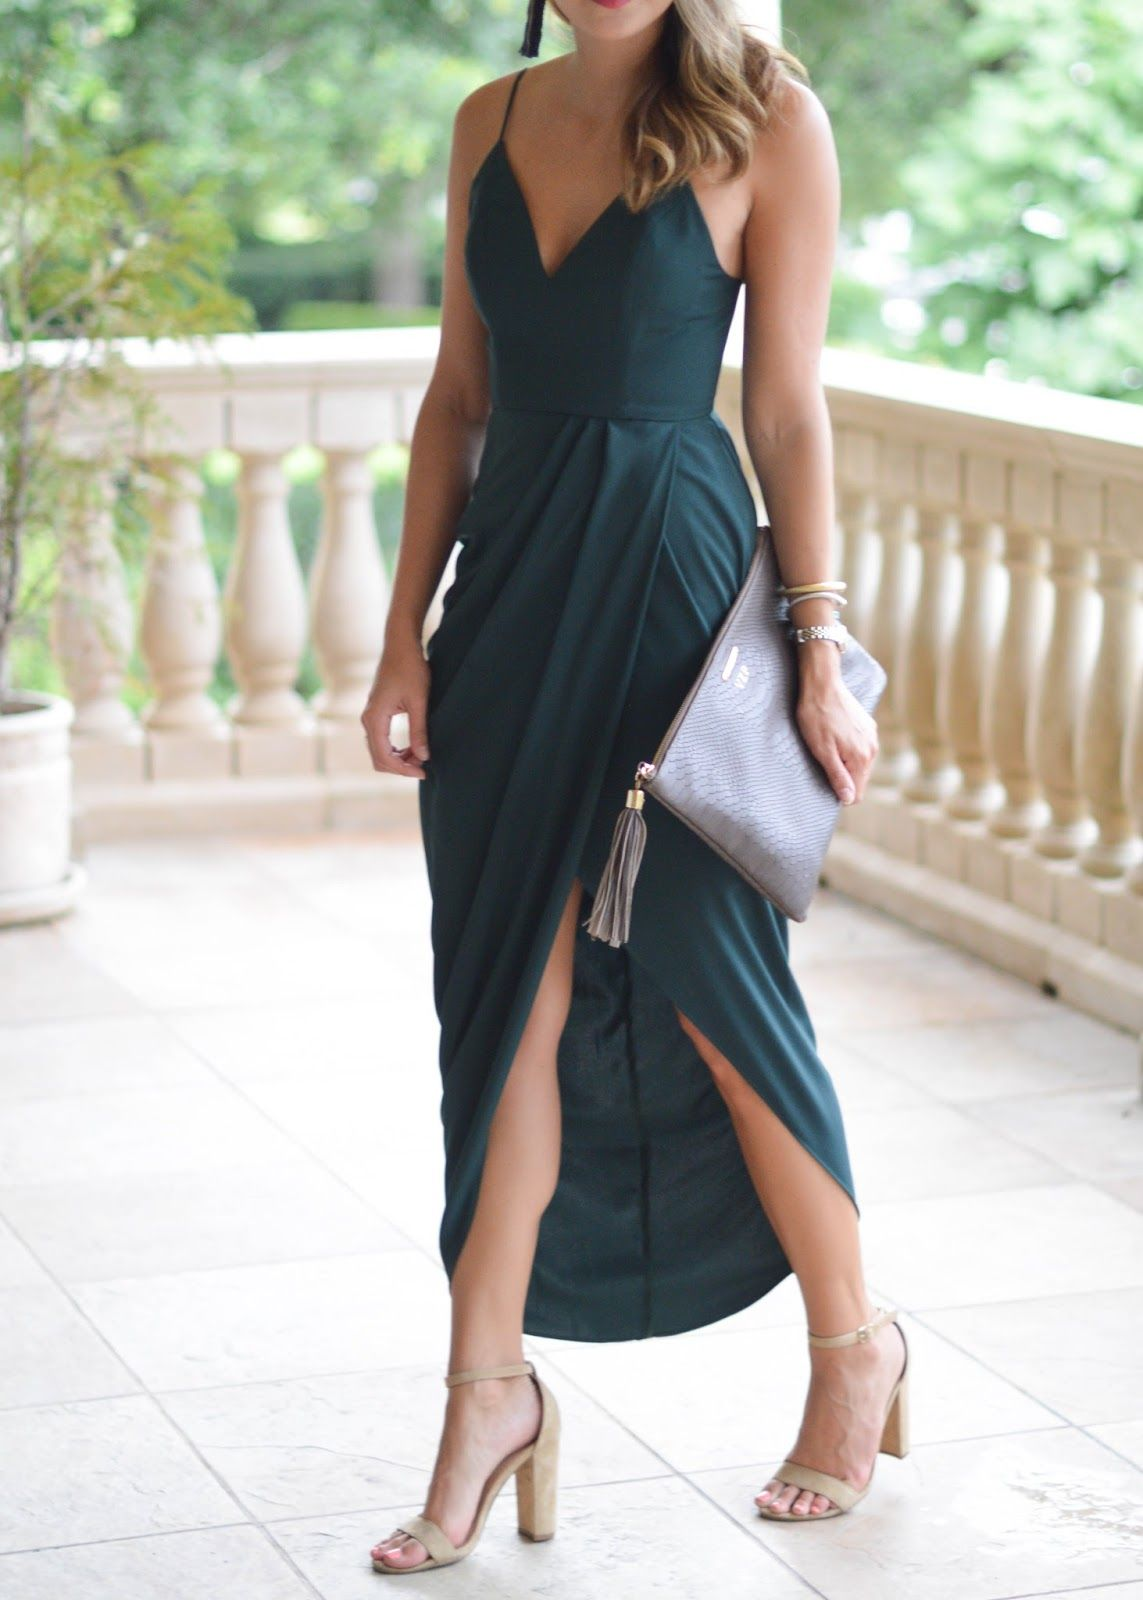 D Maxi Dress Wedding Guest Style Southern Green